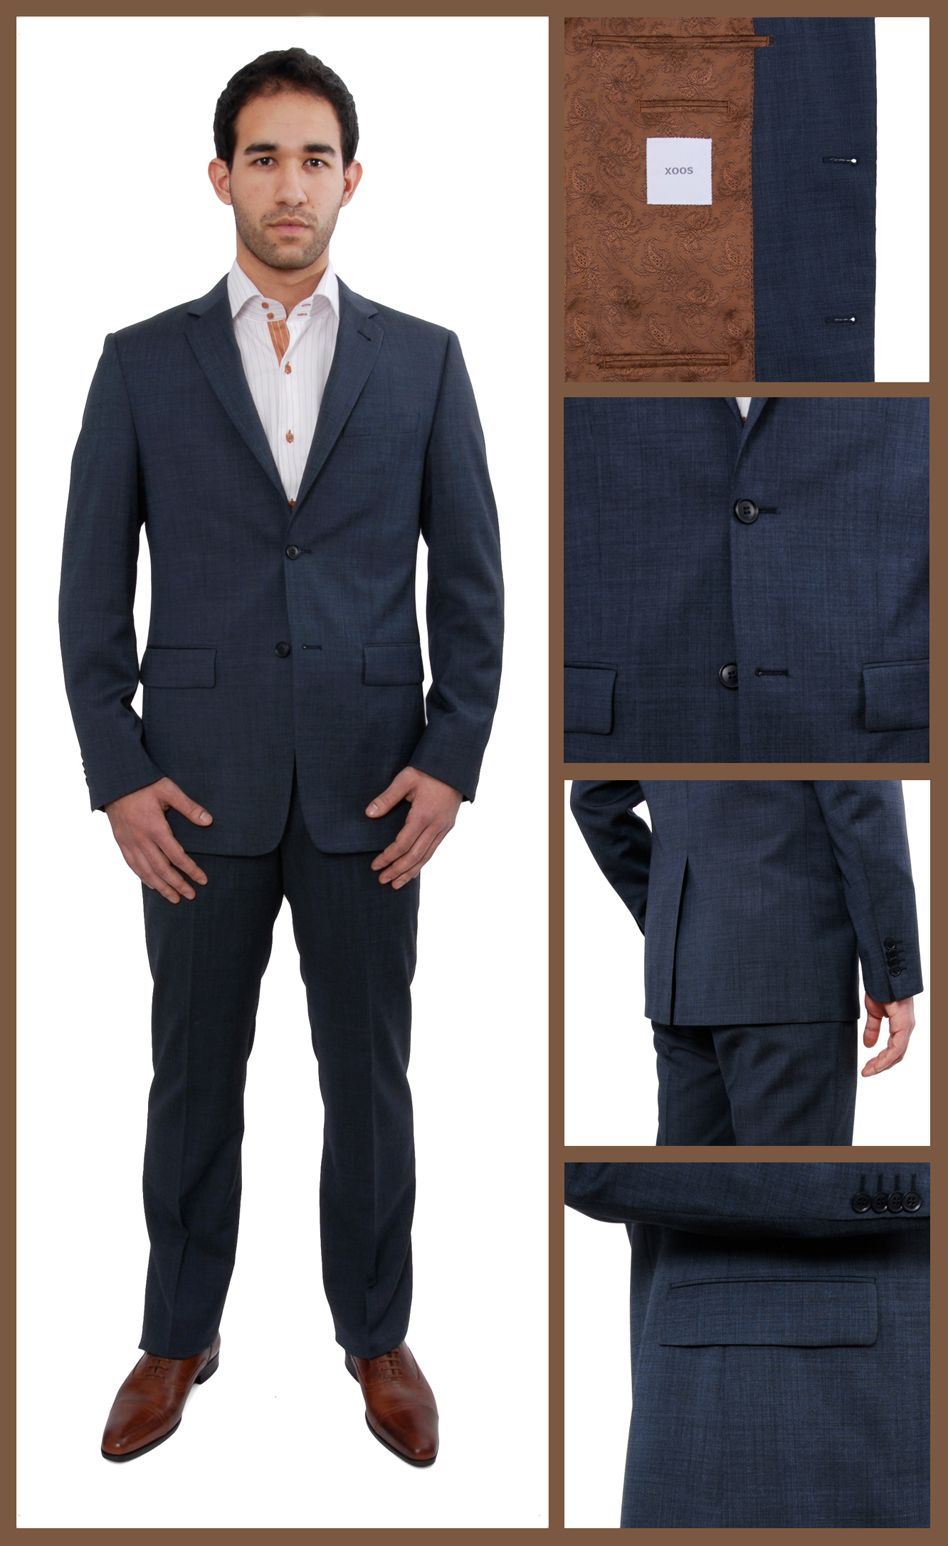 Costume Homme Bleu Navy Clint Chemise Homme Chaussures B Pinterest Navy Costumes And